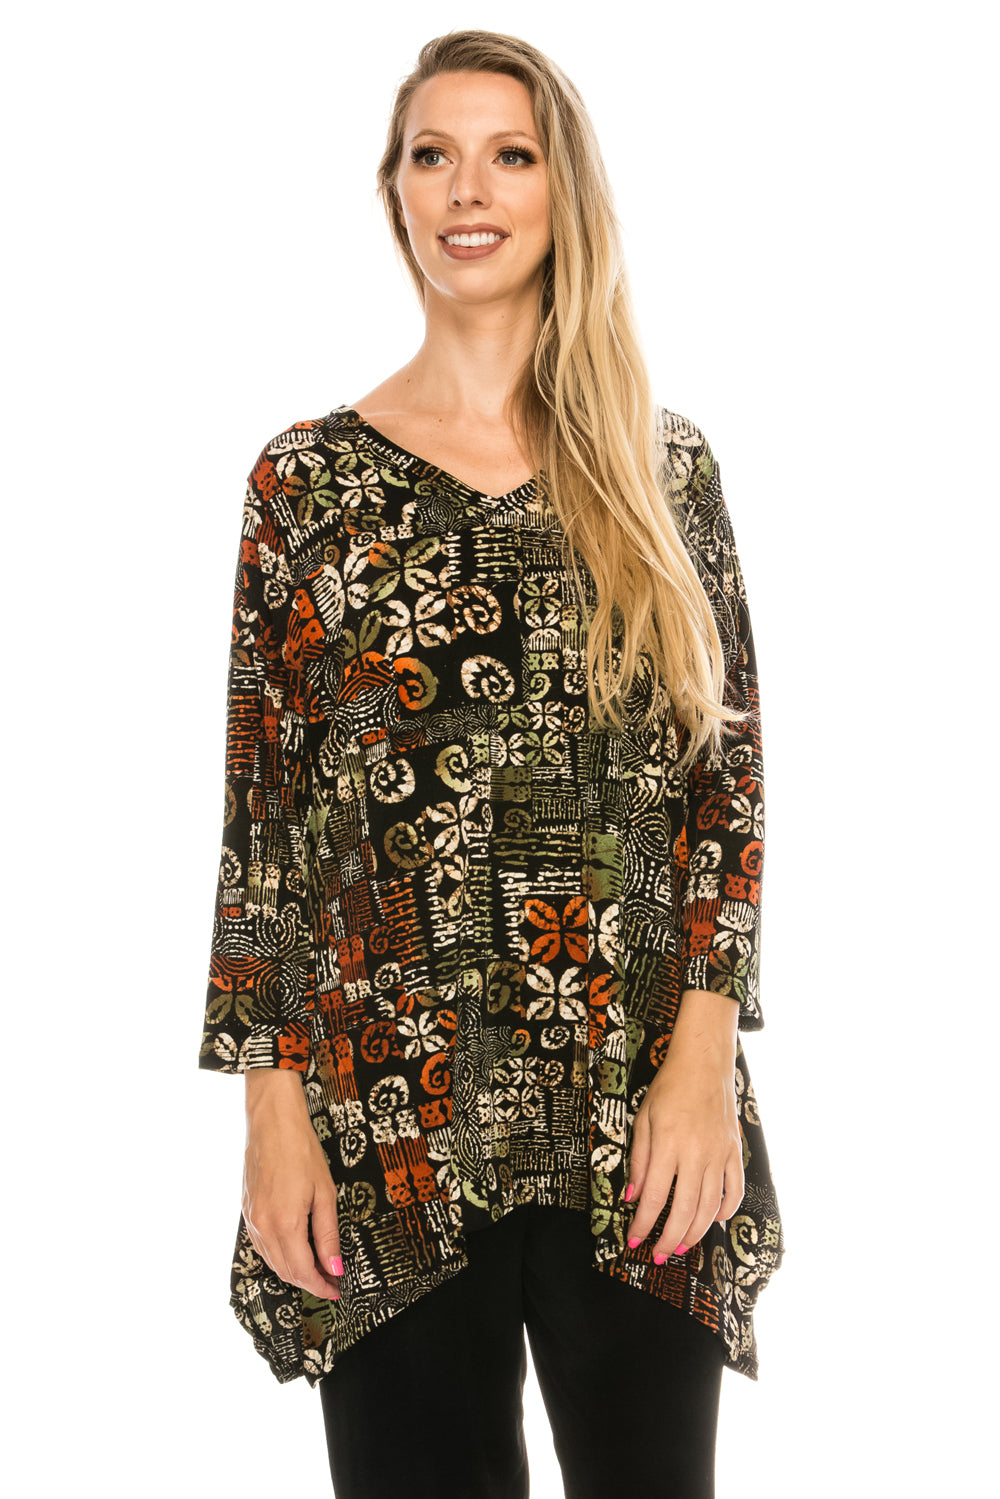 Jostar Women's Stretchy V-Neck Binding Top 3/4 Sleeve Print, 313BN-QP-W167 - Jostar Online